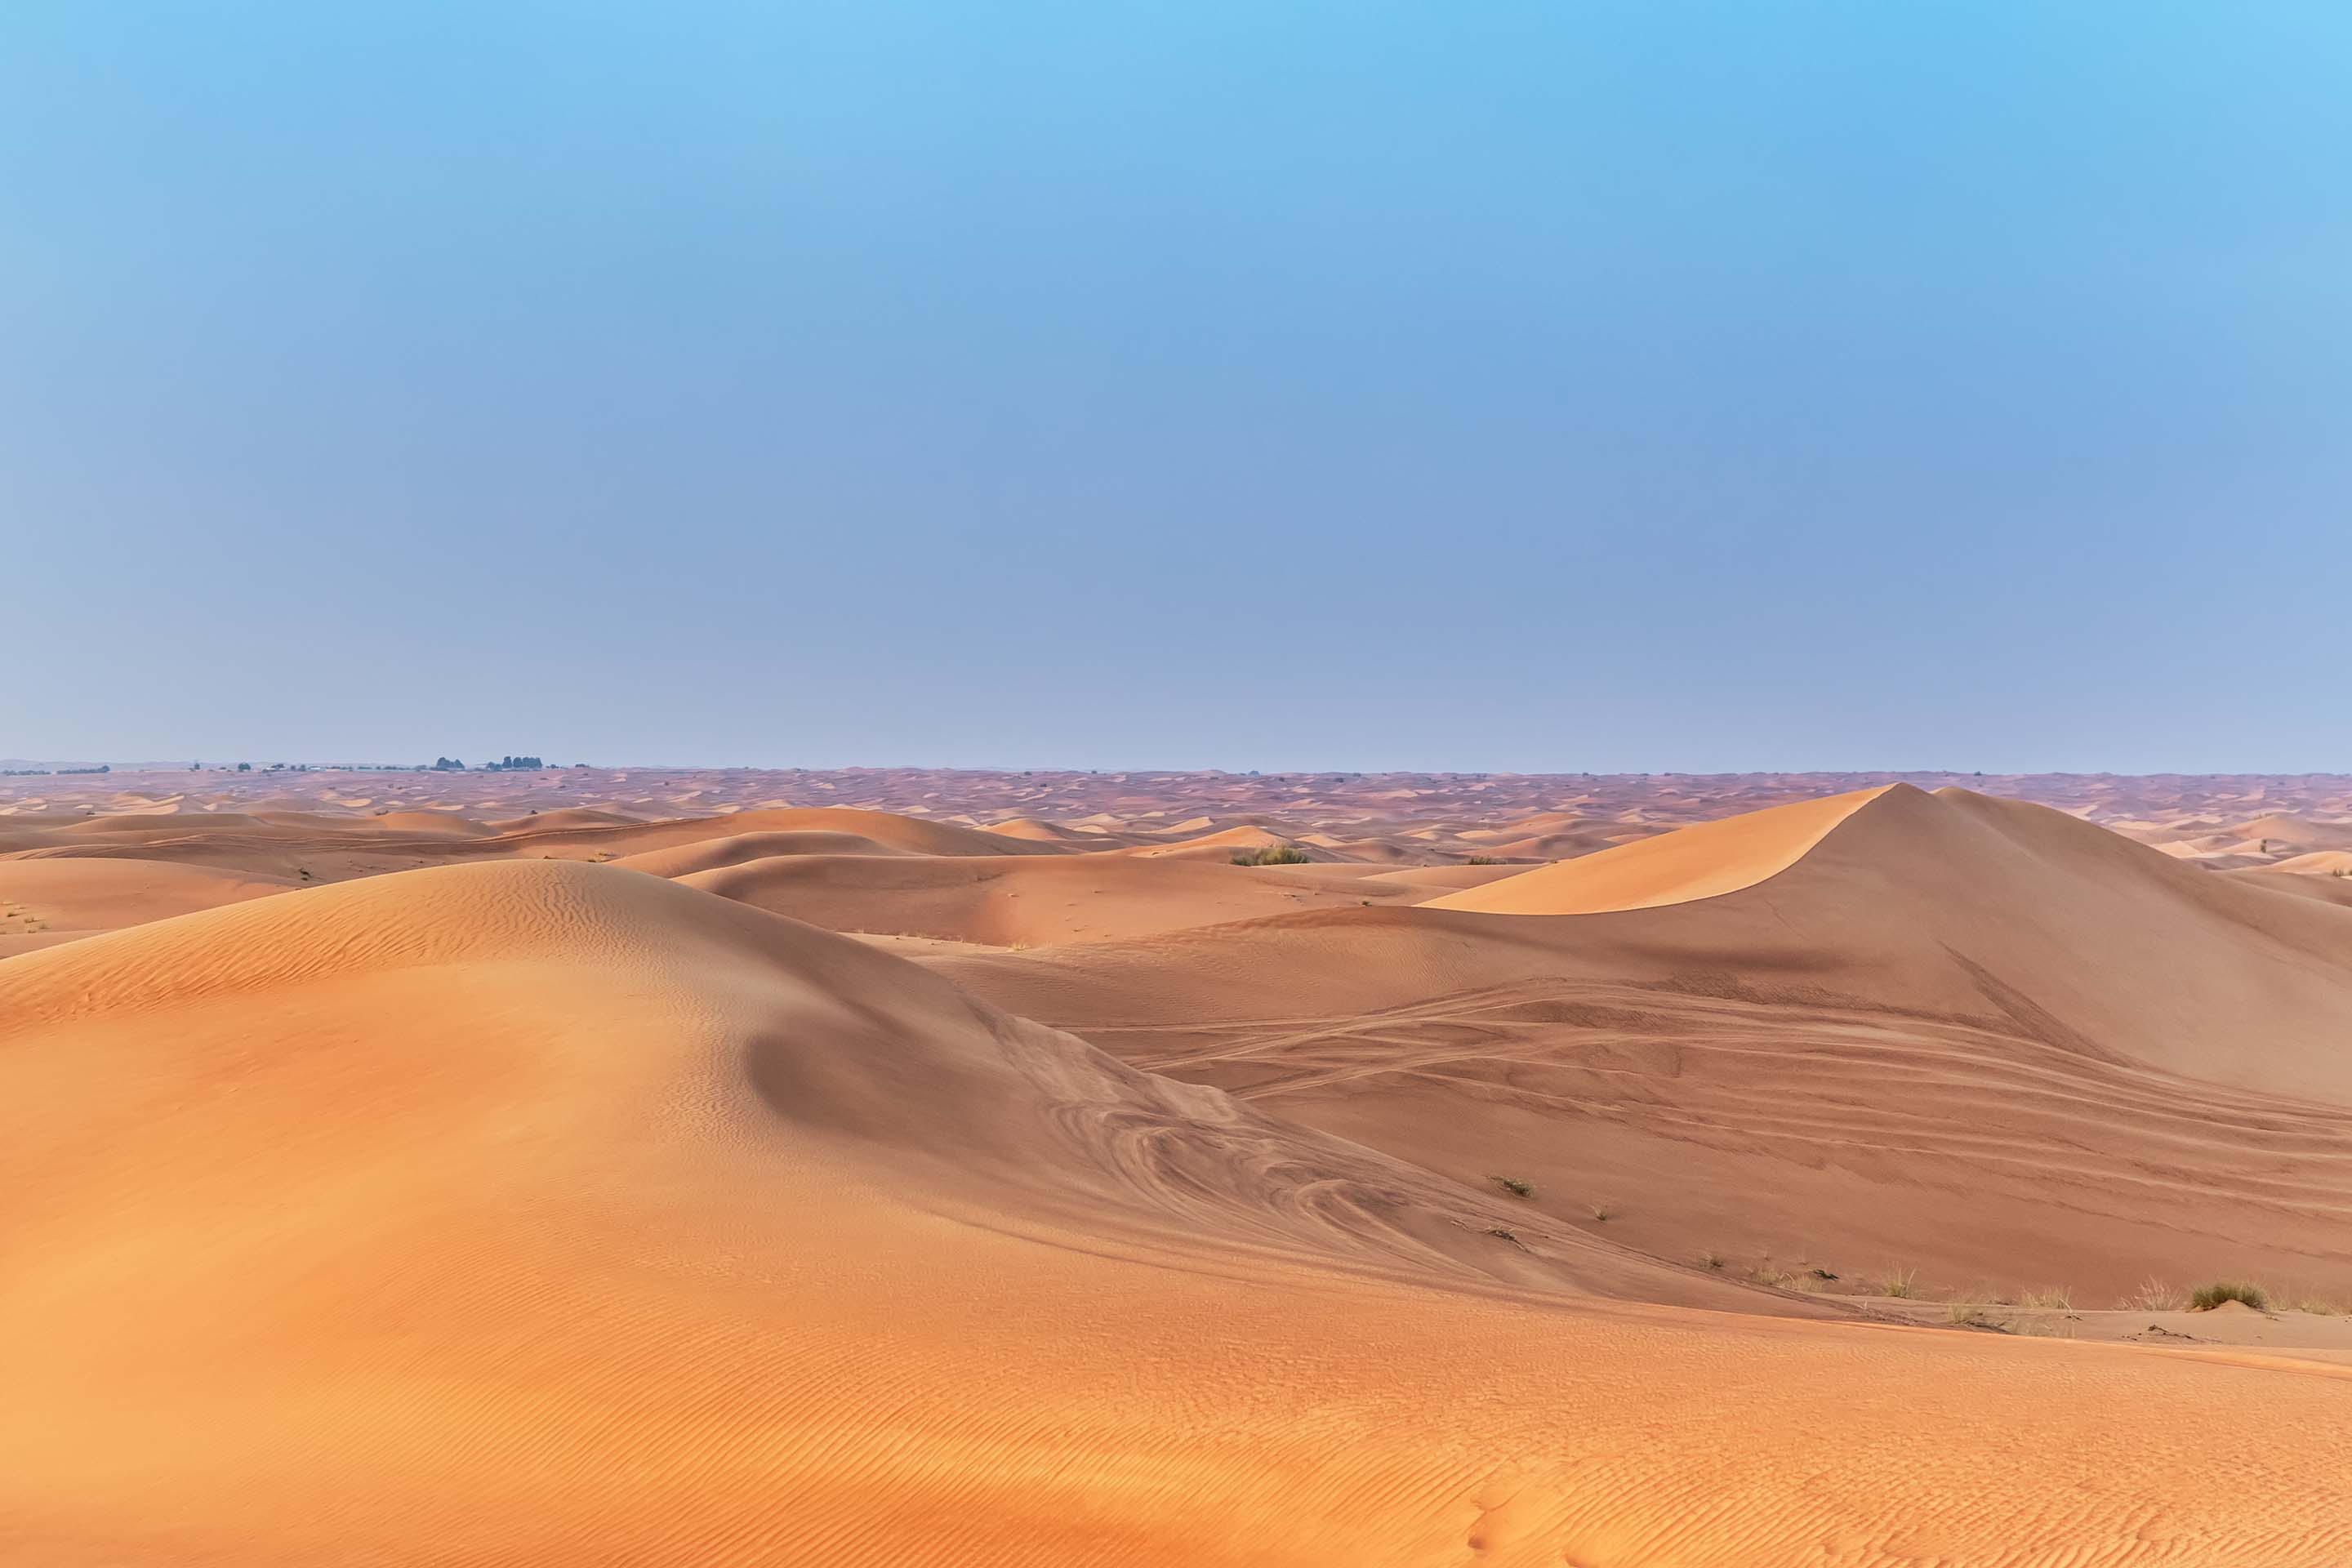 Desert Sand Dunes and Blue Skyline, Arabian Gulf